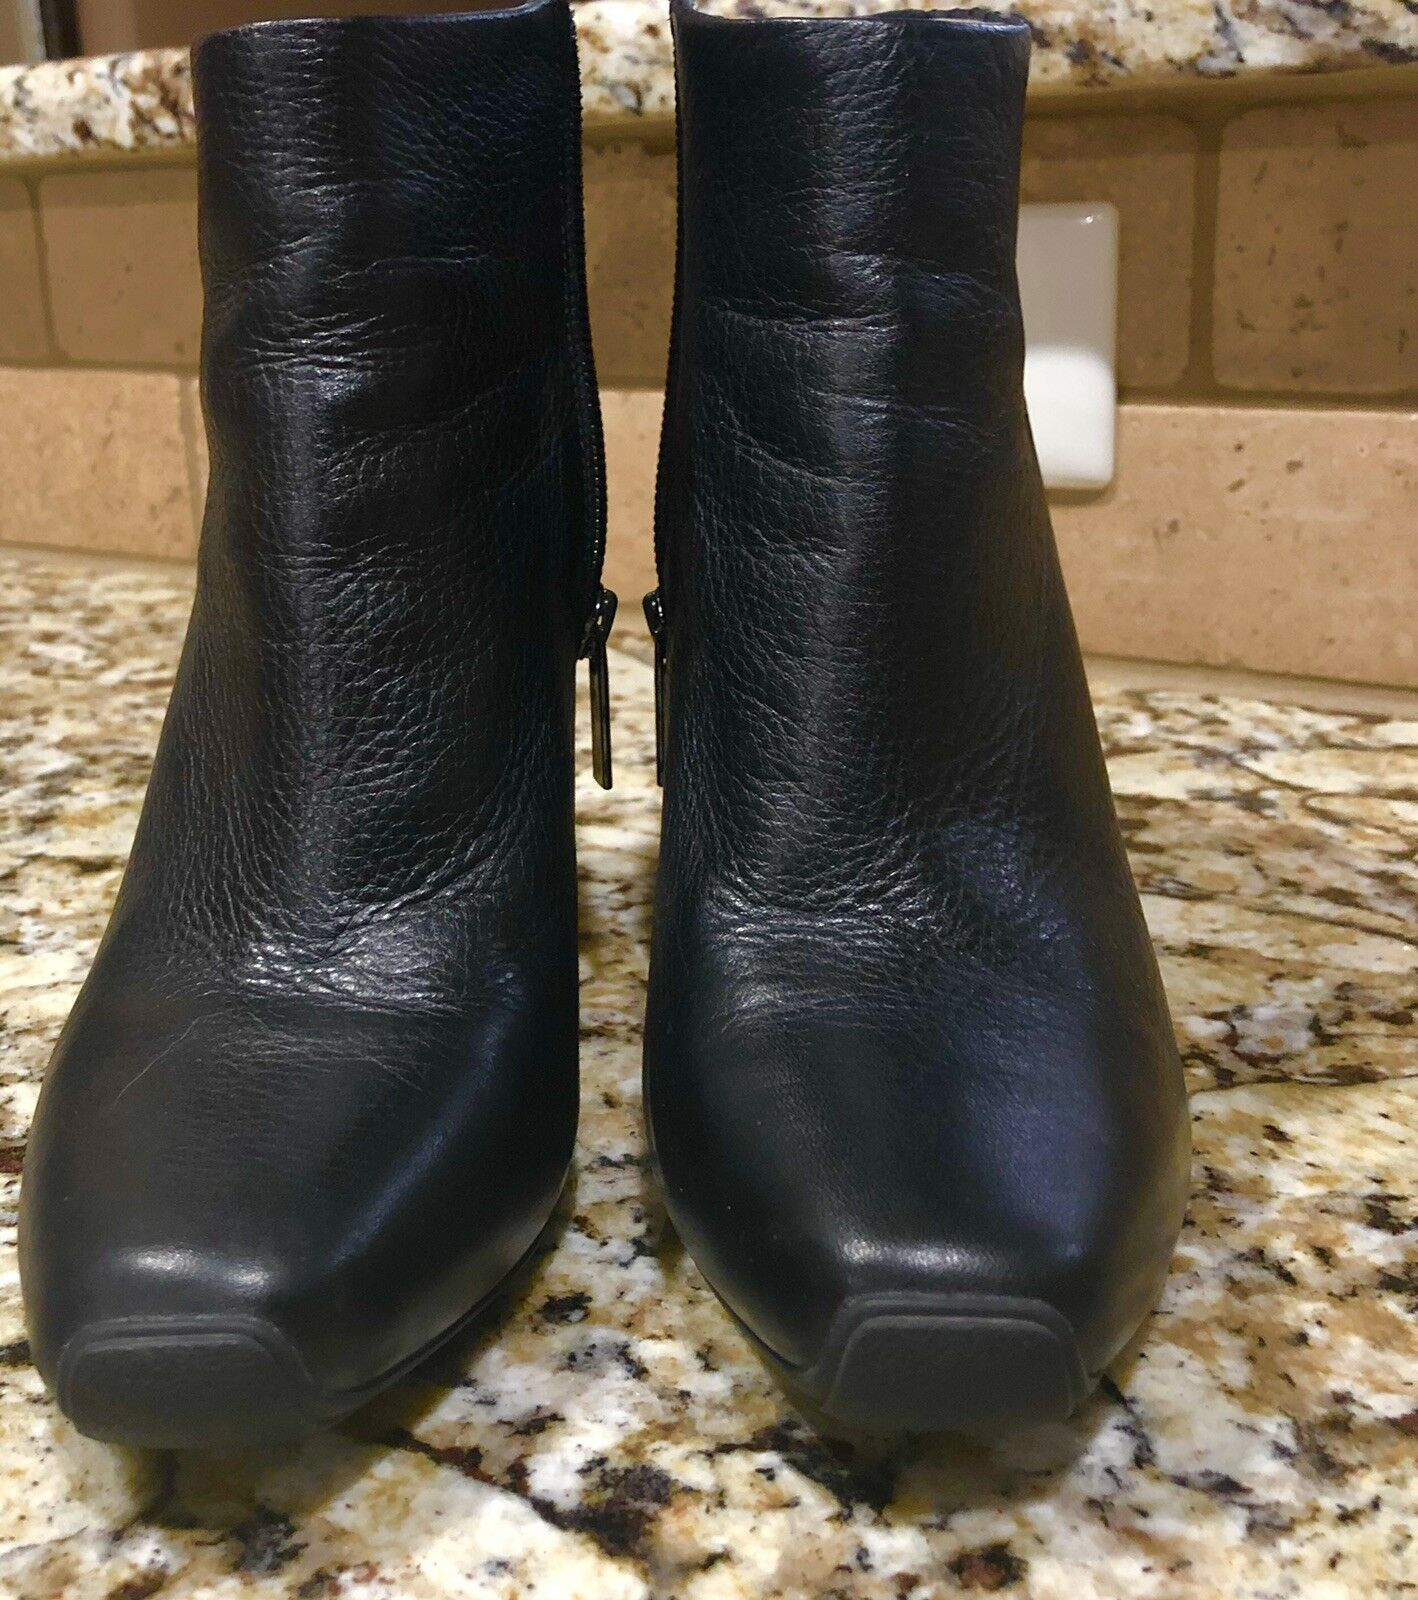 Kenneth Cole New York Women's Soft Leather Ankle Bootie Boots 6.5